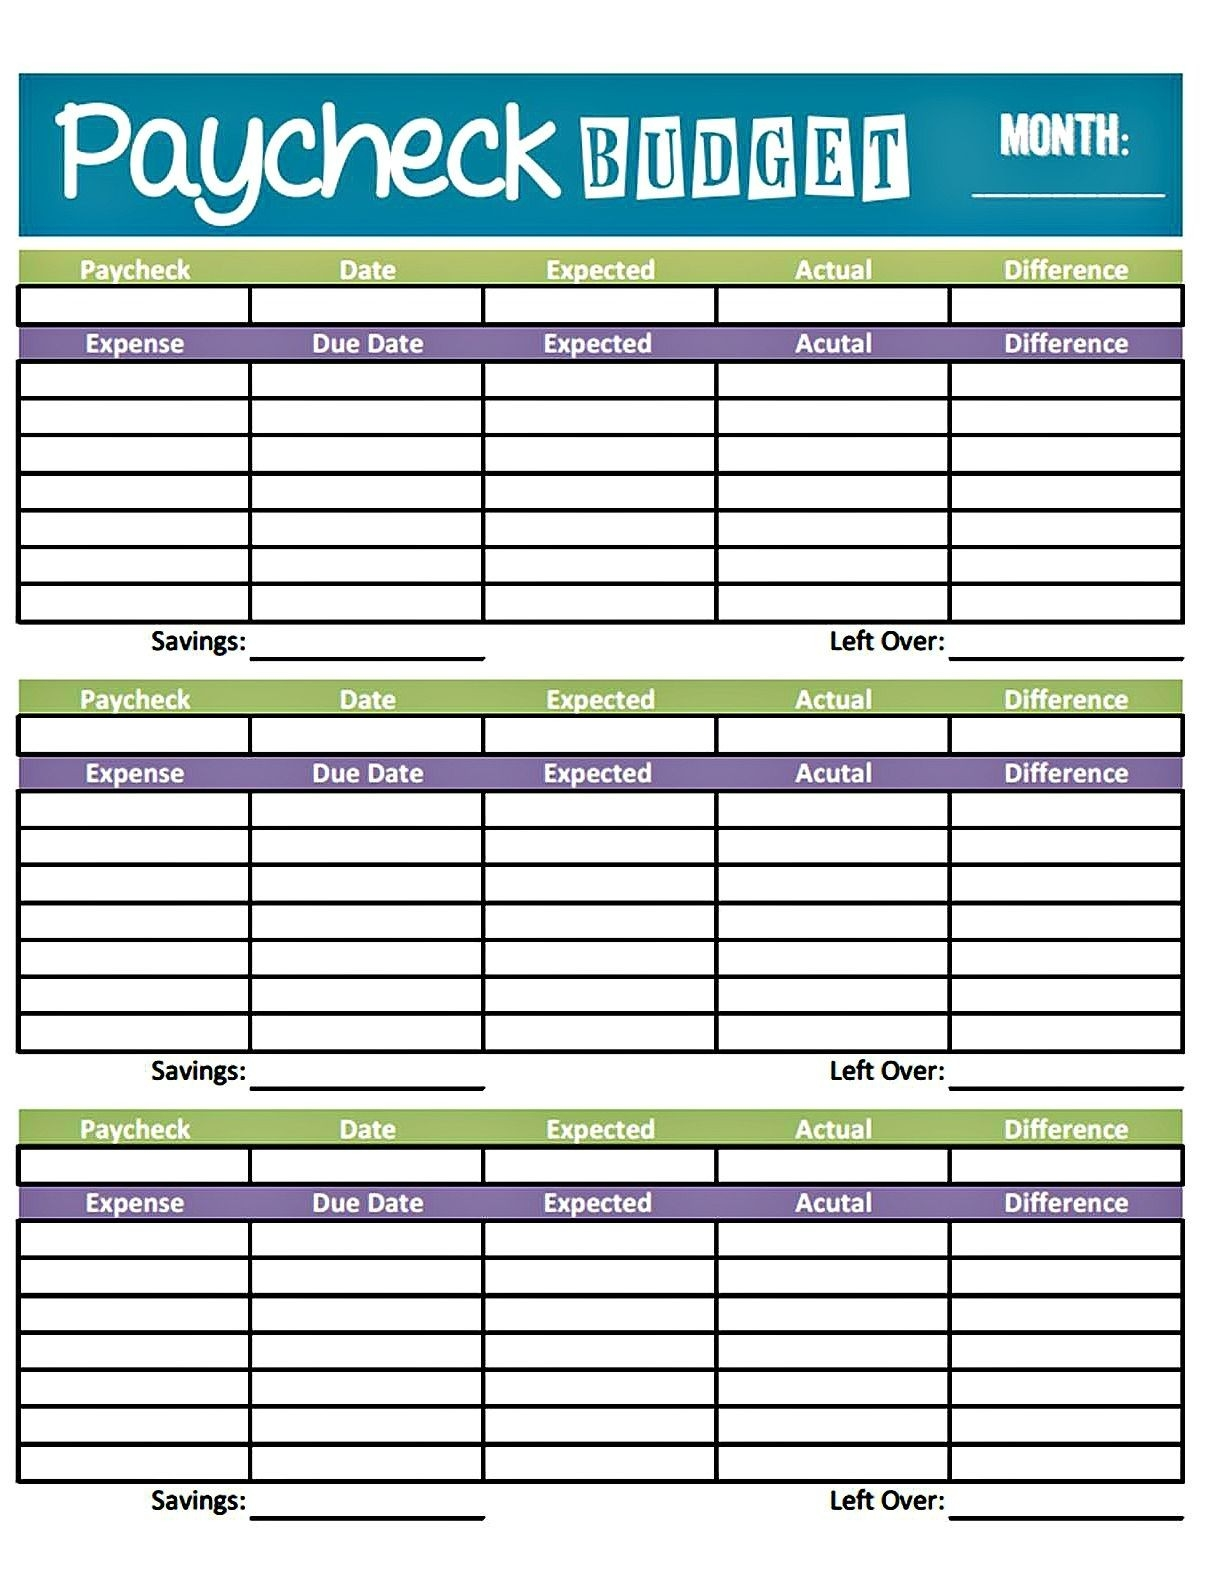 Livin' Paycheck To Paycheck - Free Printable Budget Form-Schedule Biweekly Templates Free Printable